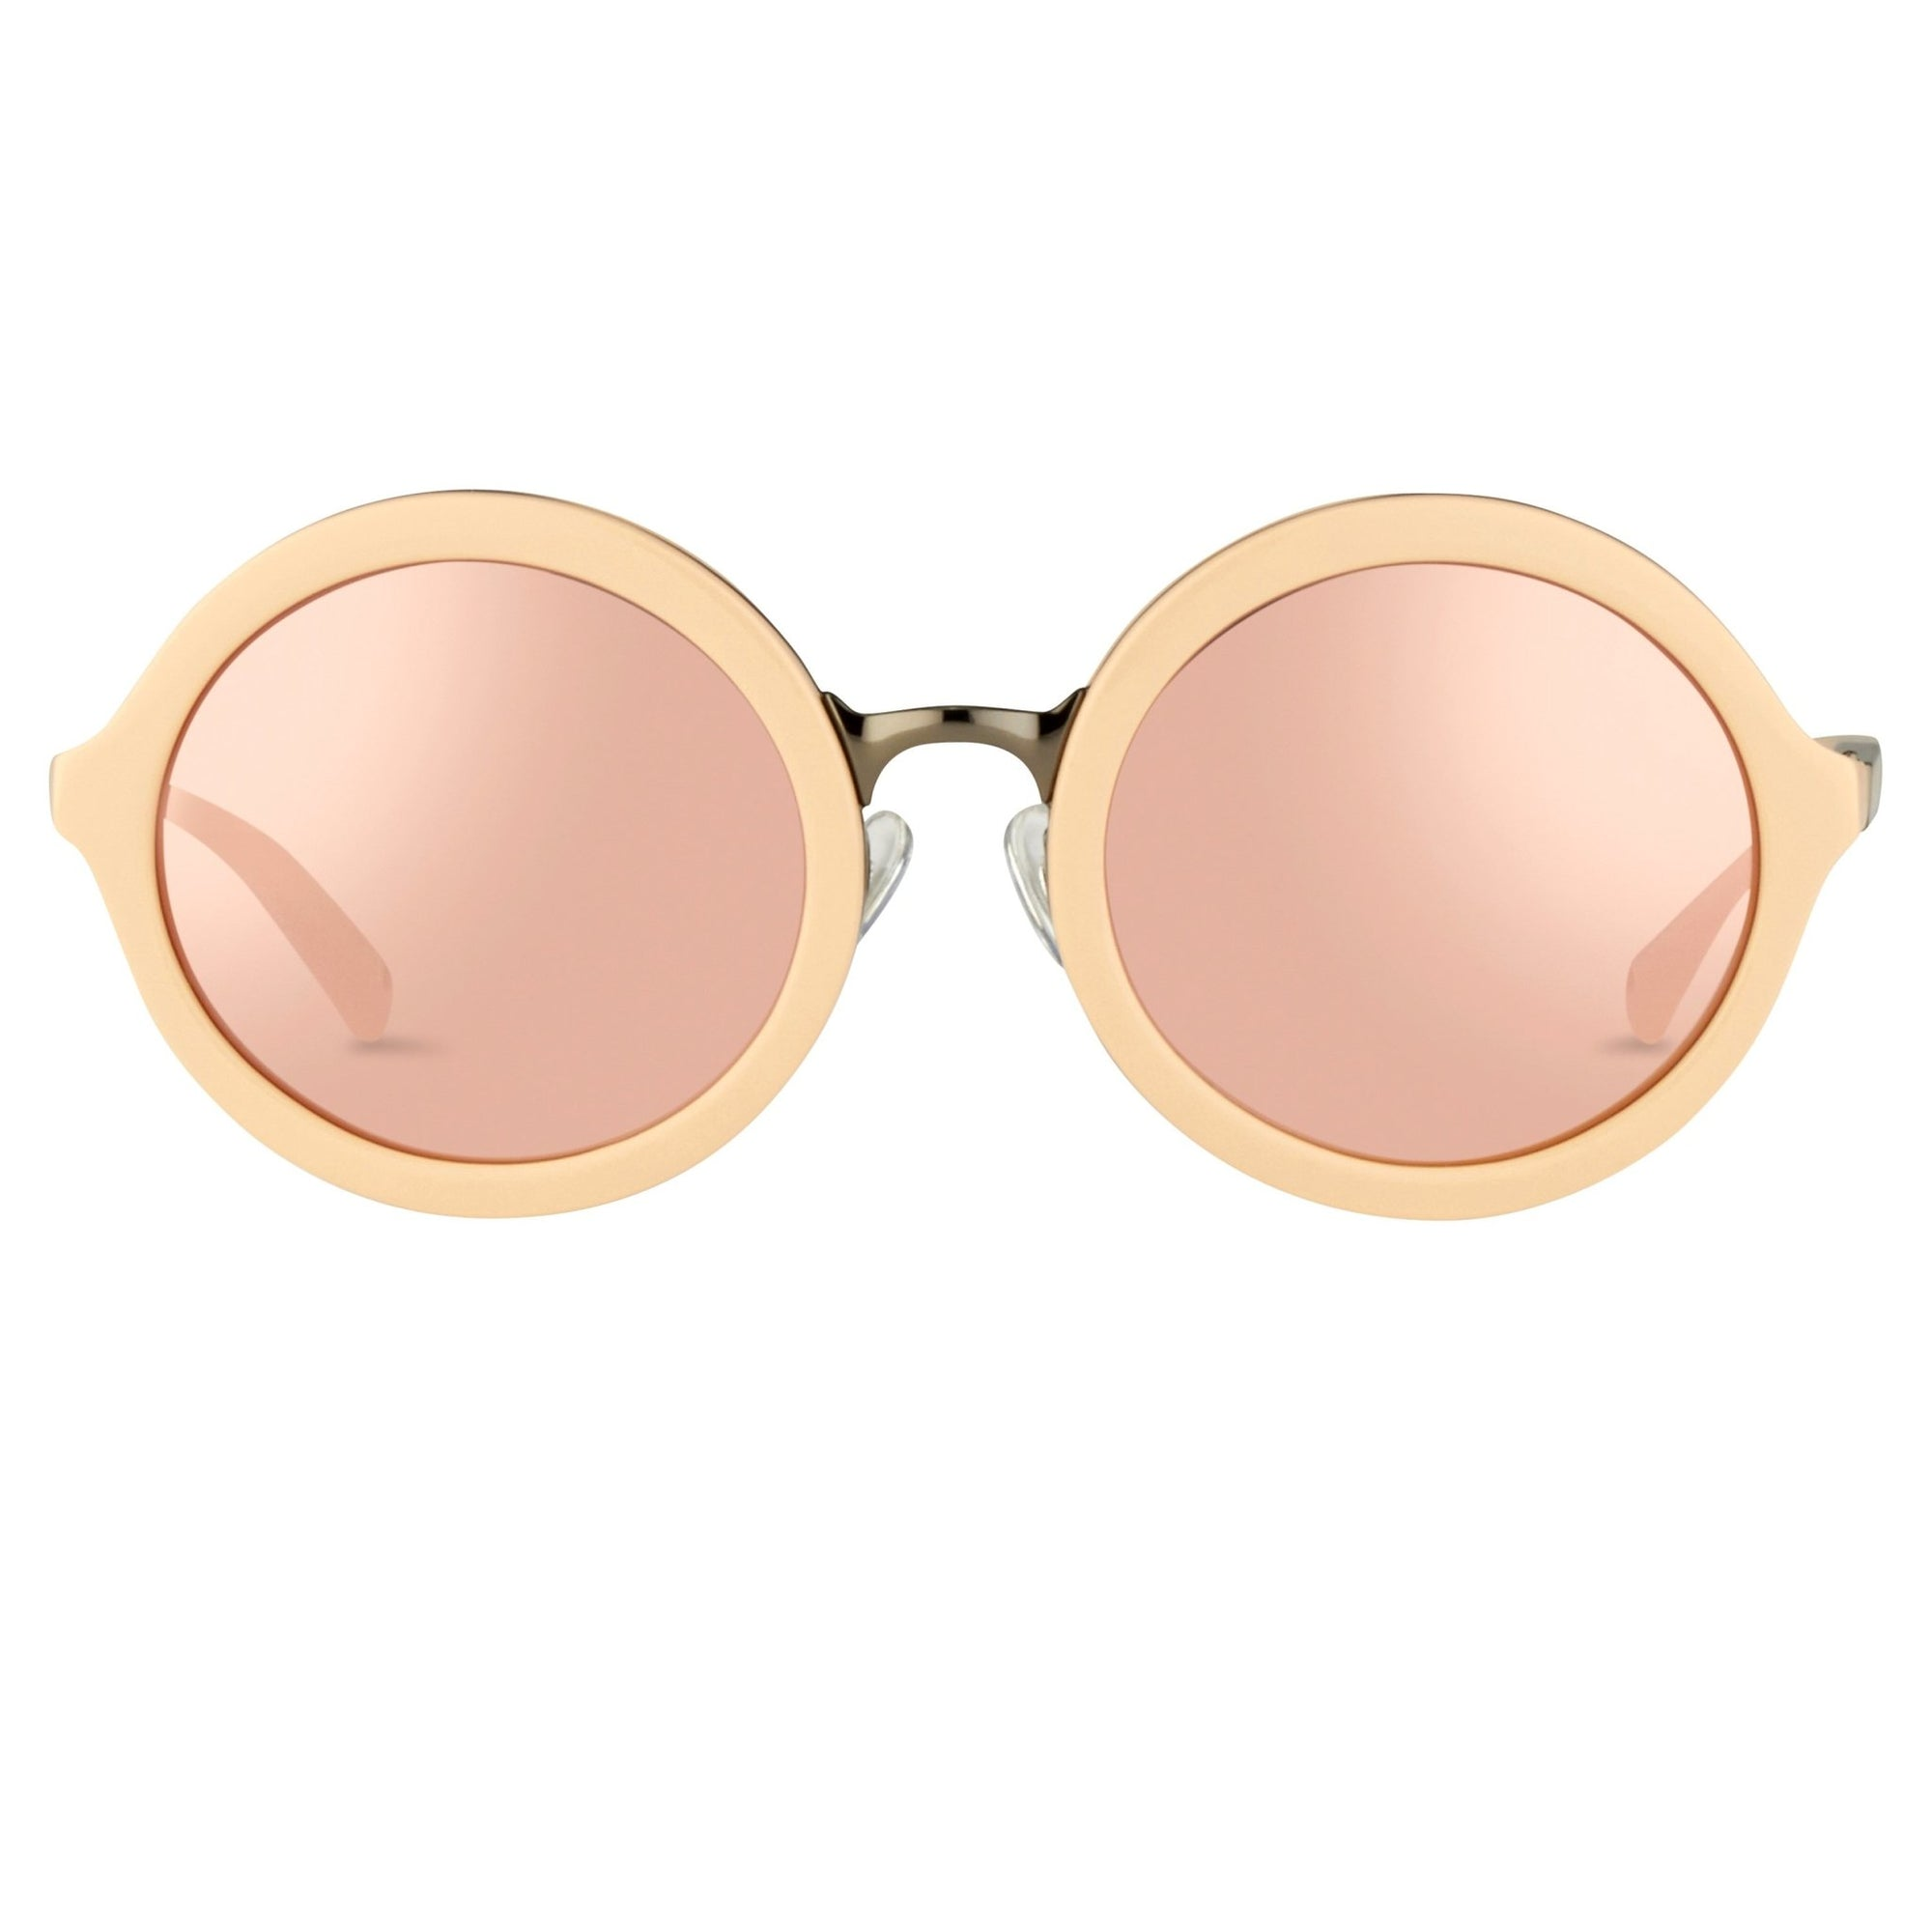 Phillip Lim Sunglasses Round Female Pink Gold with CAT3 Peach/Blue Mirror Lenses - PL11C26SUN - Watches & Crystals